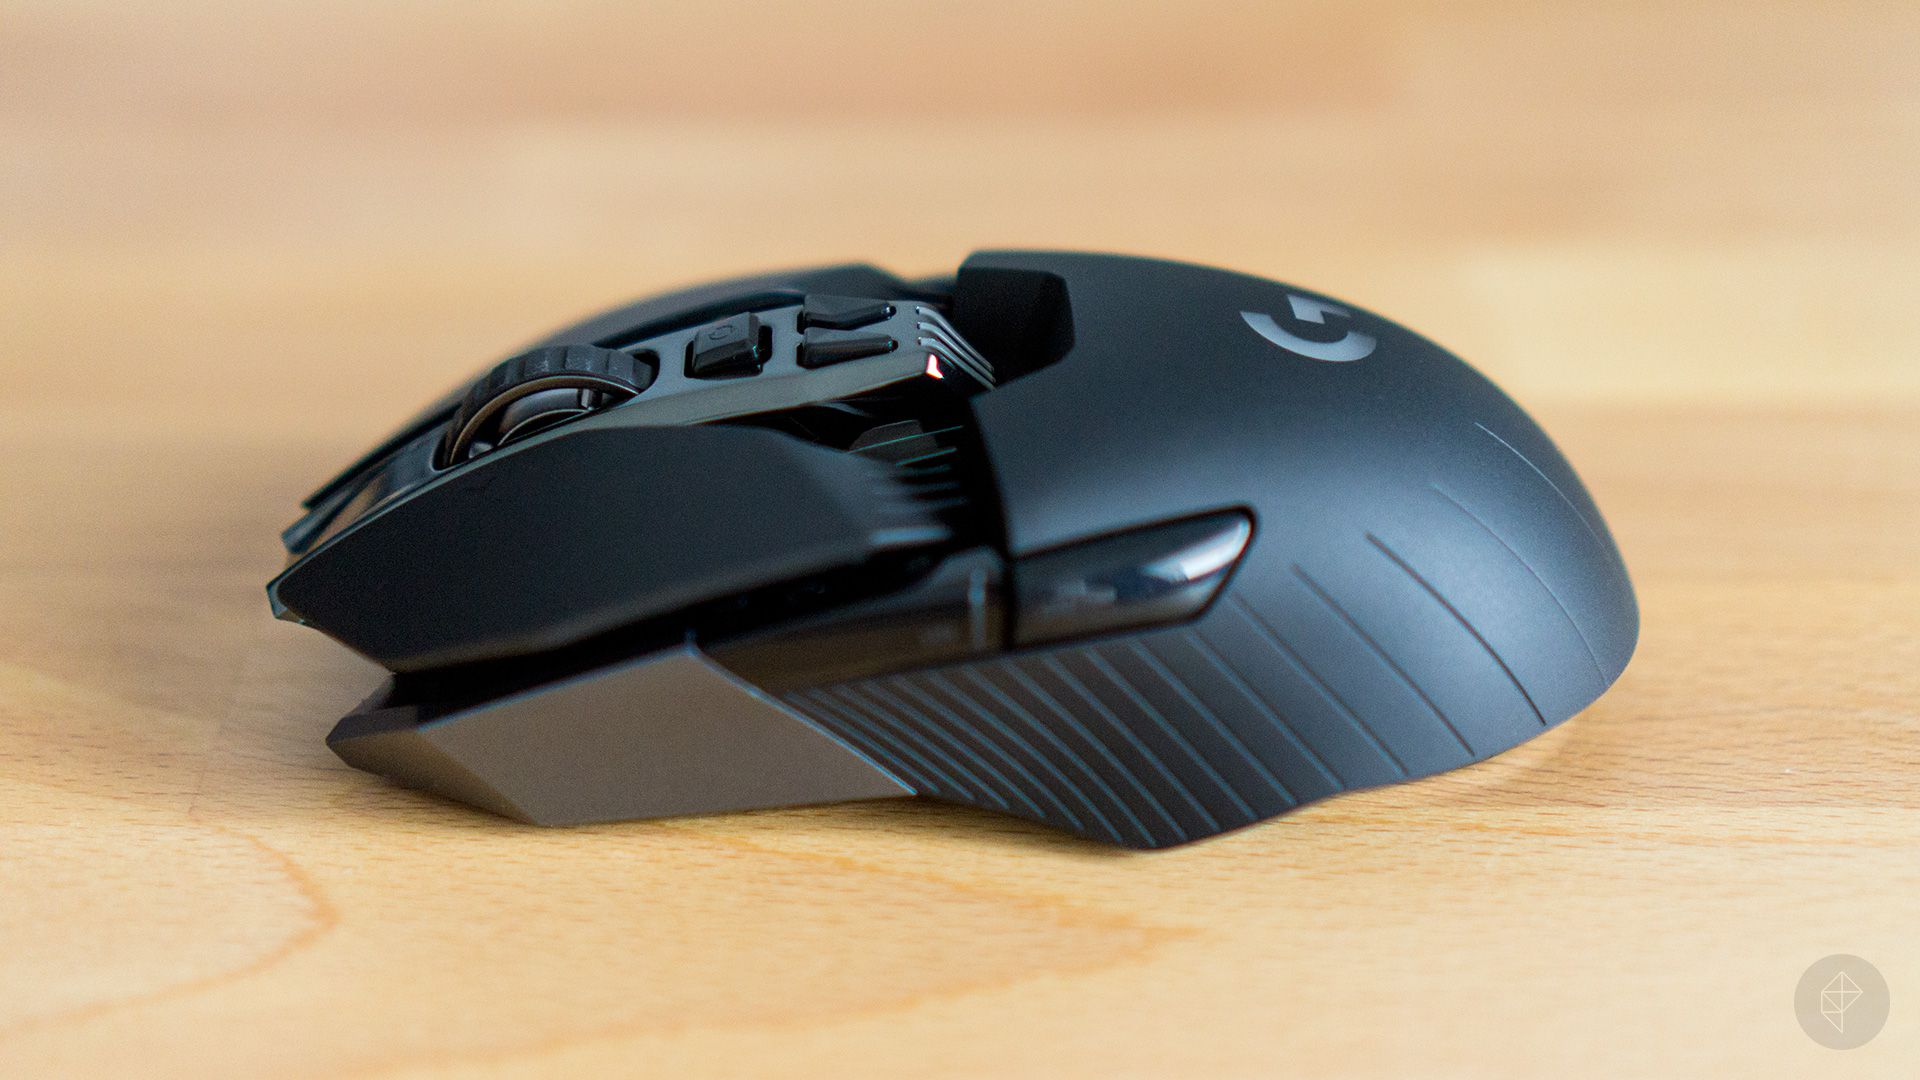 Logitech's G900 is meant to alleviate your concerns about wireless gaming mice | Polygon